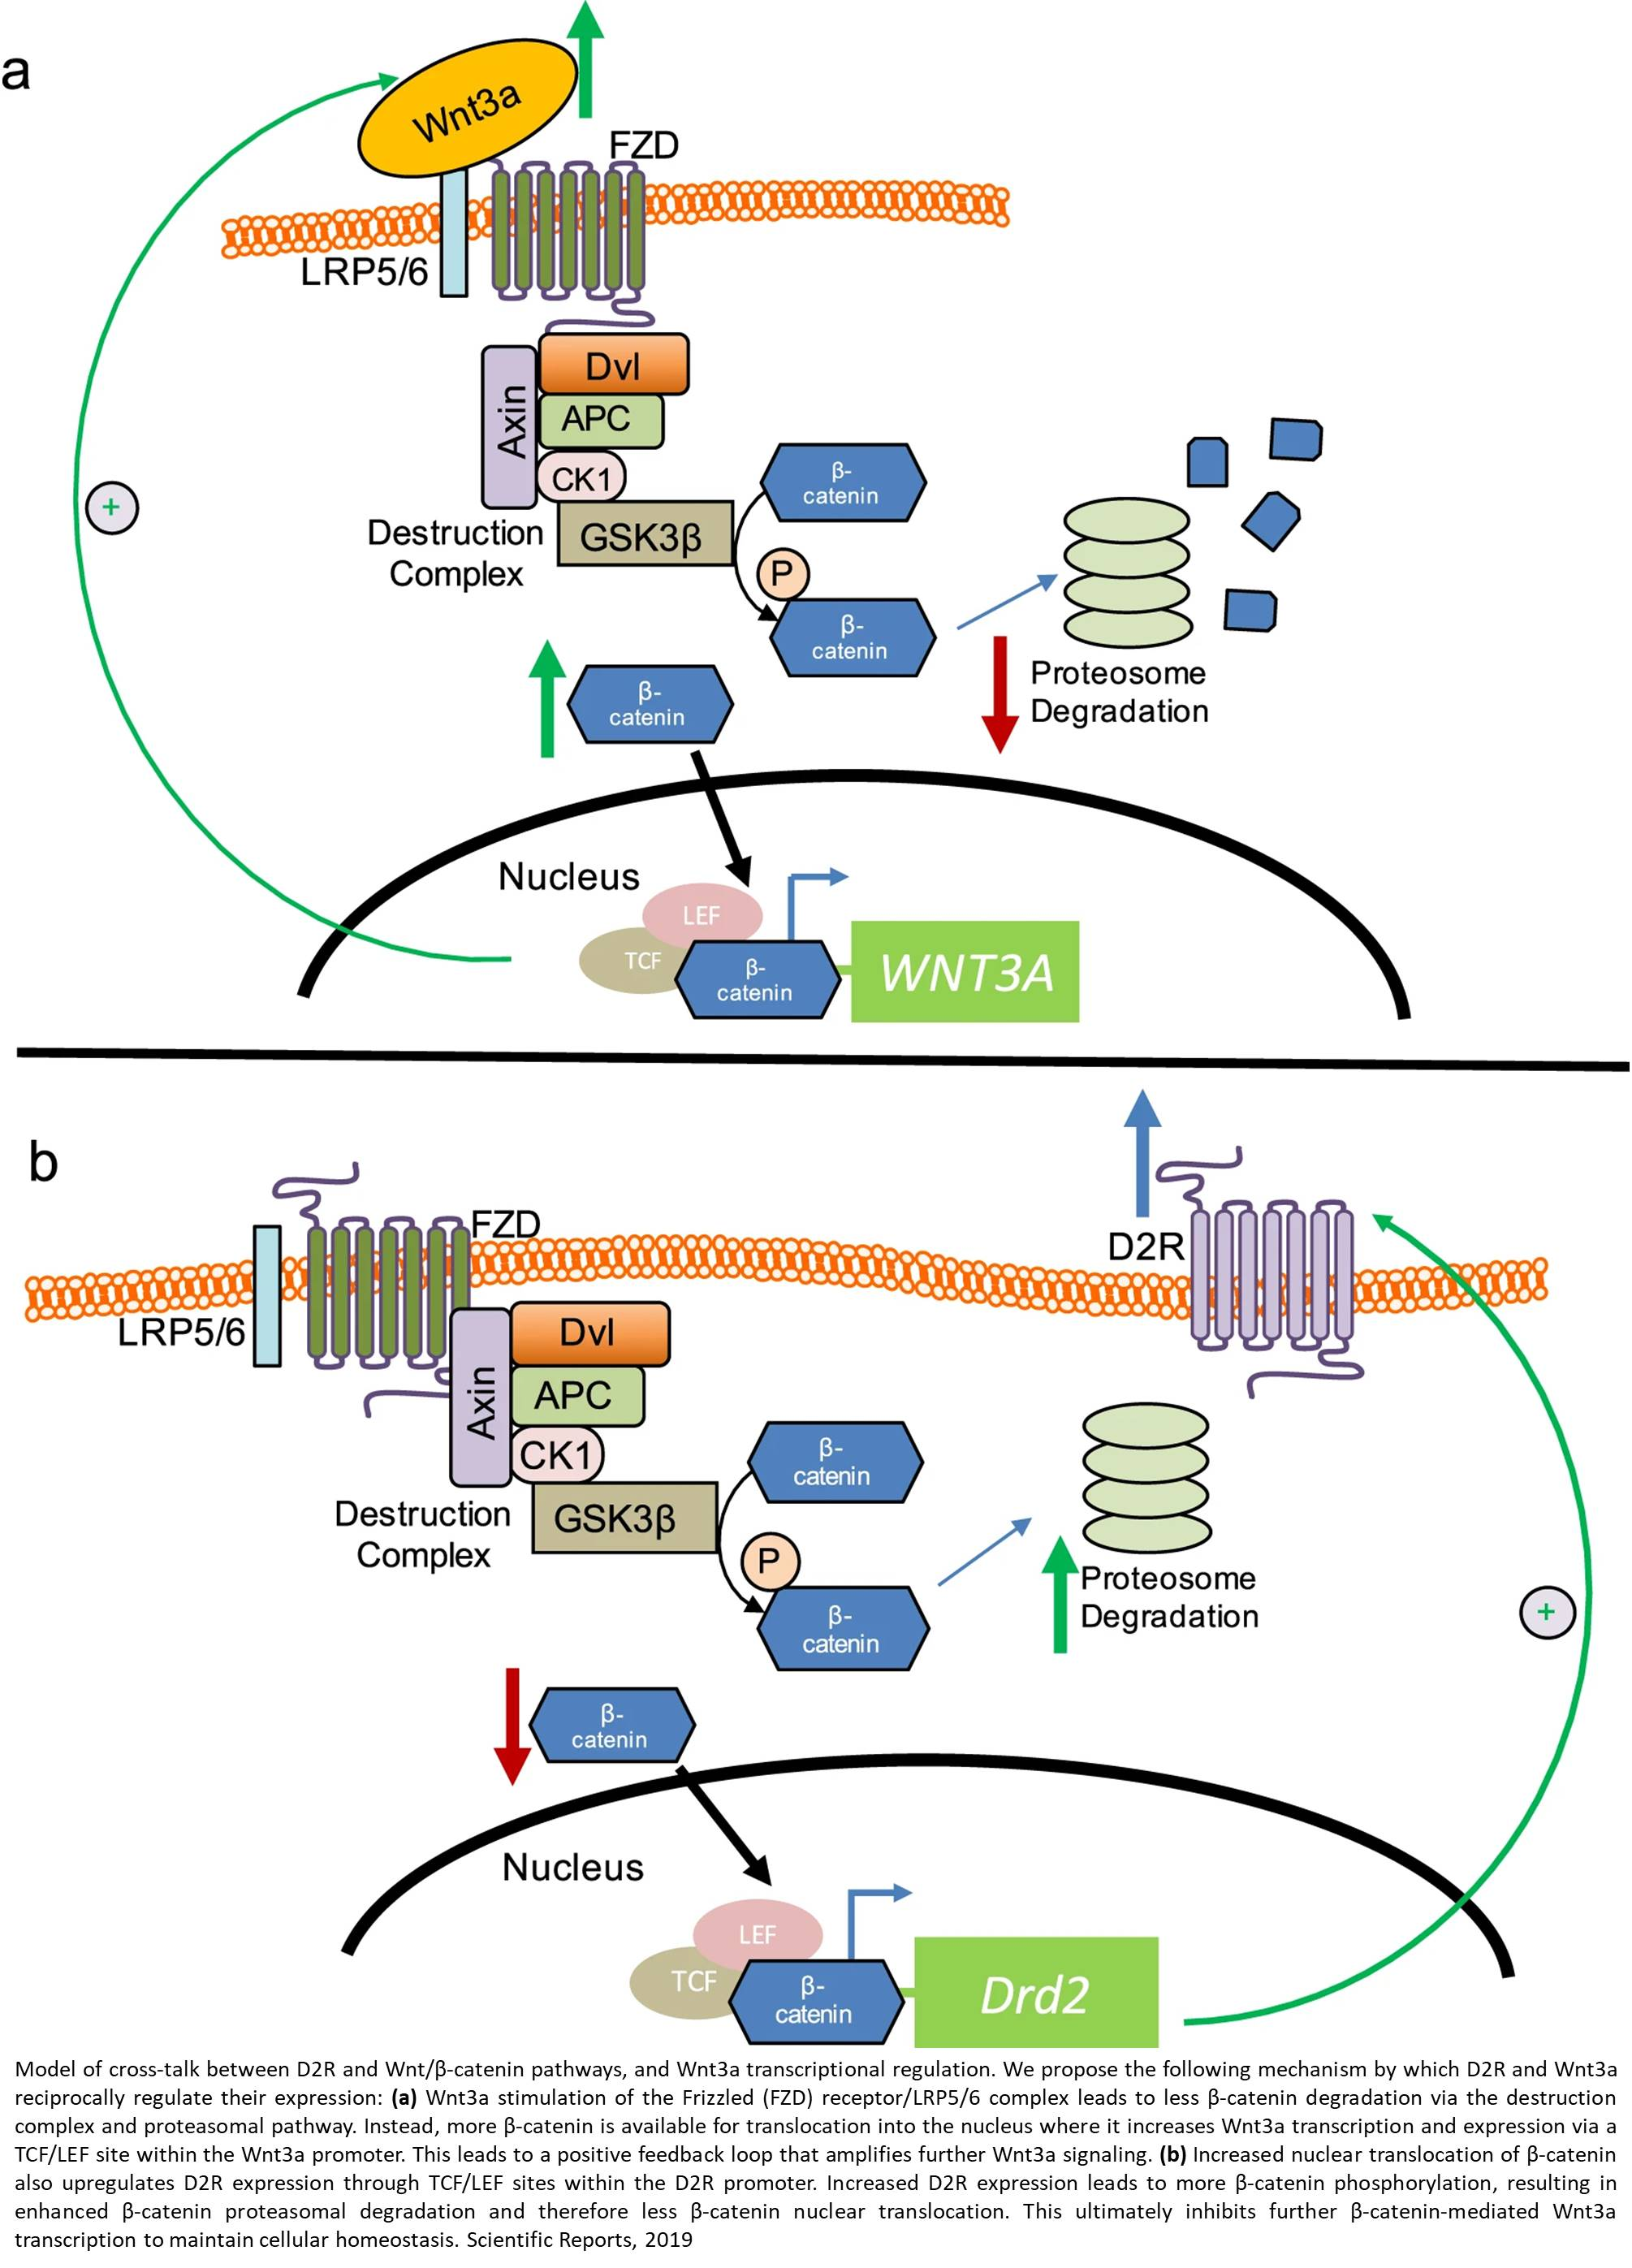 A new role for dopamine in gene transcription and cell proliferation